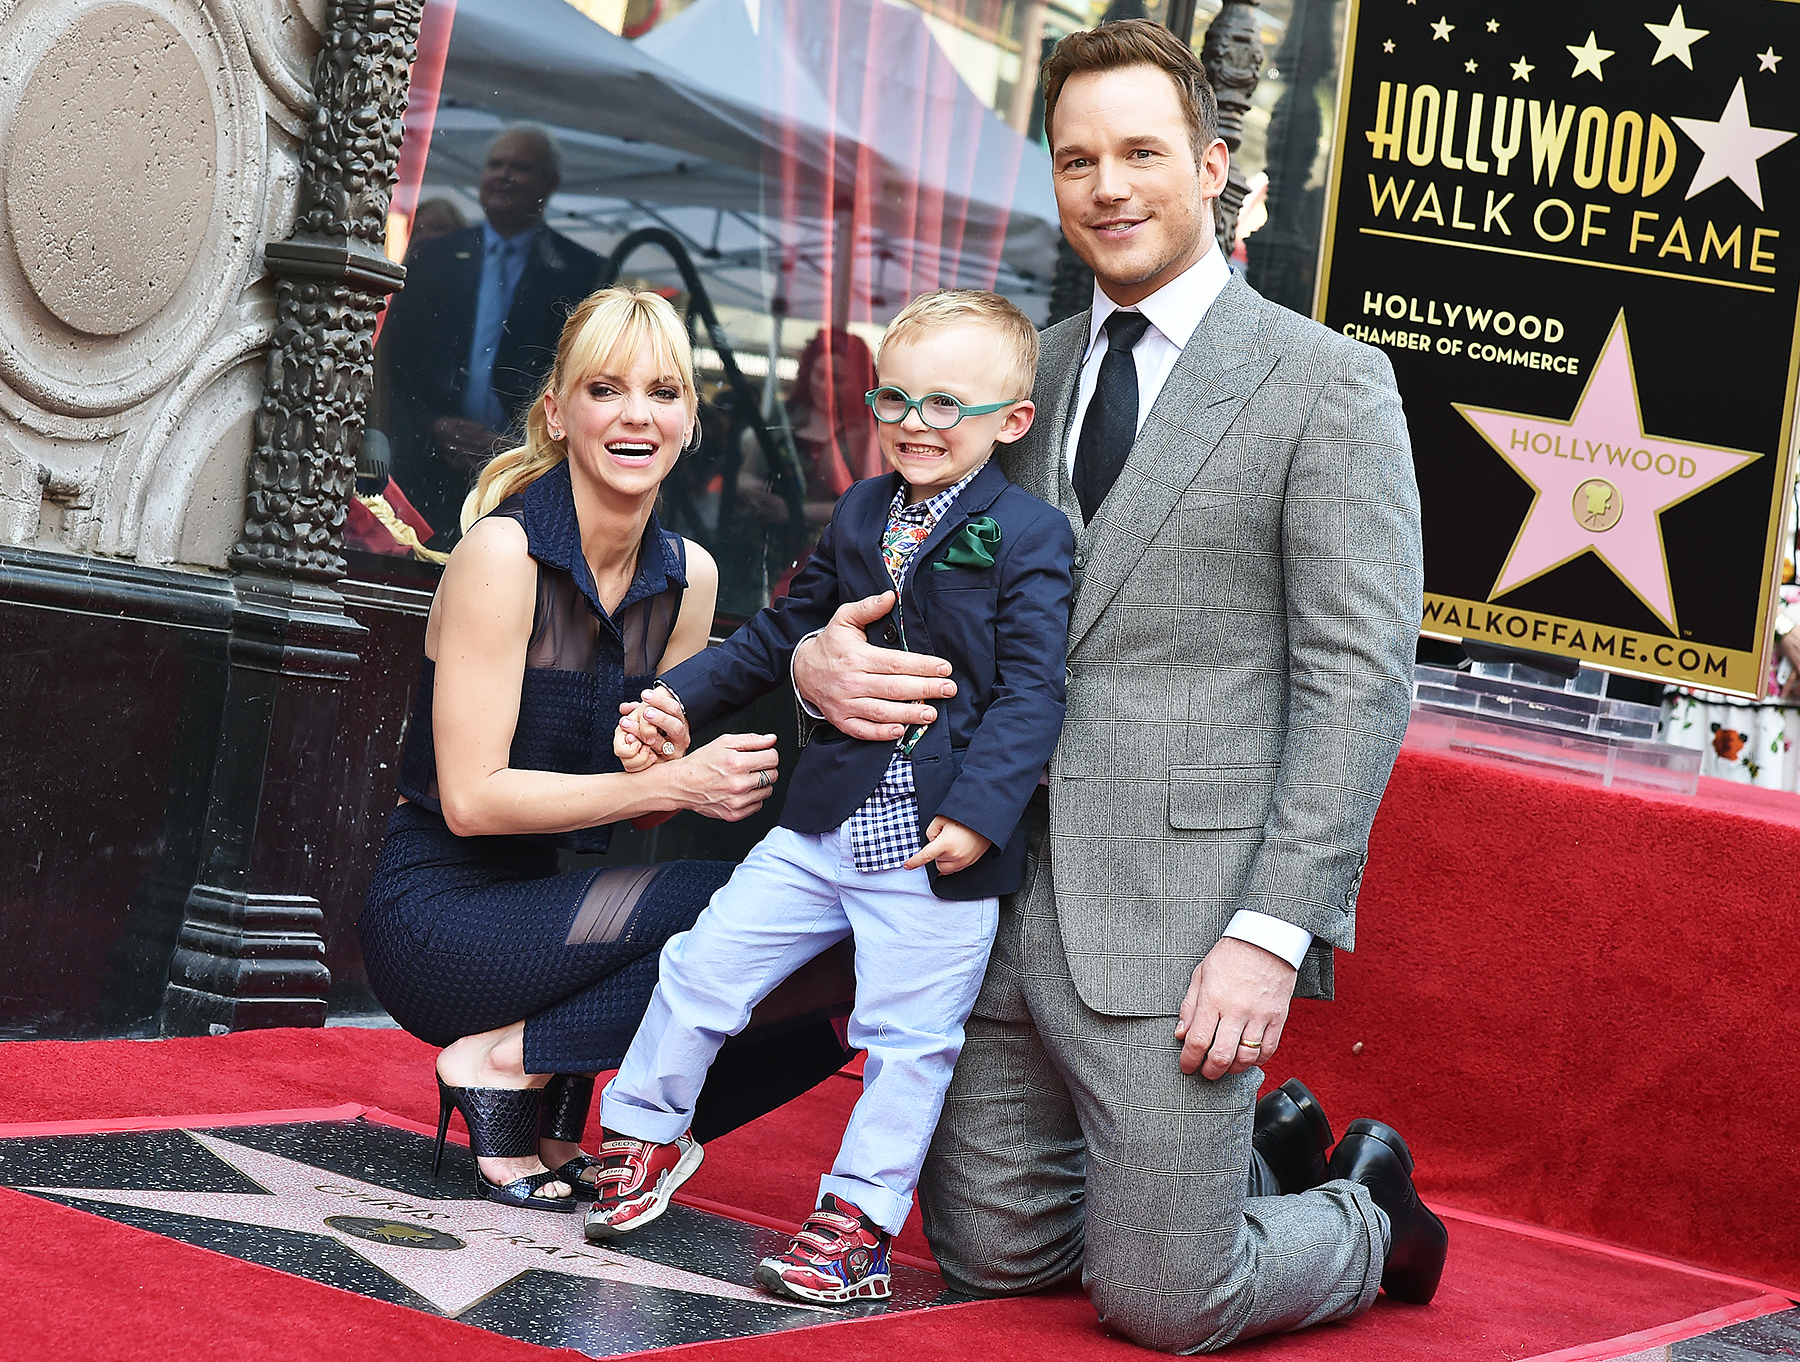 Chris Pratt misses Anna Faris son Jack